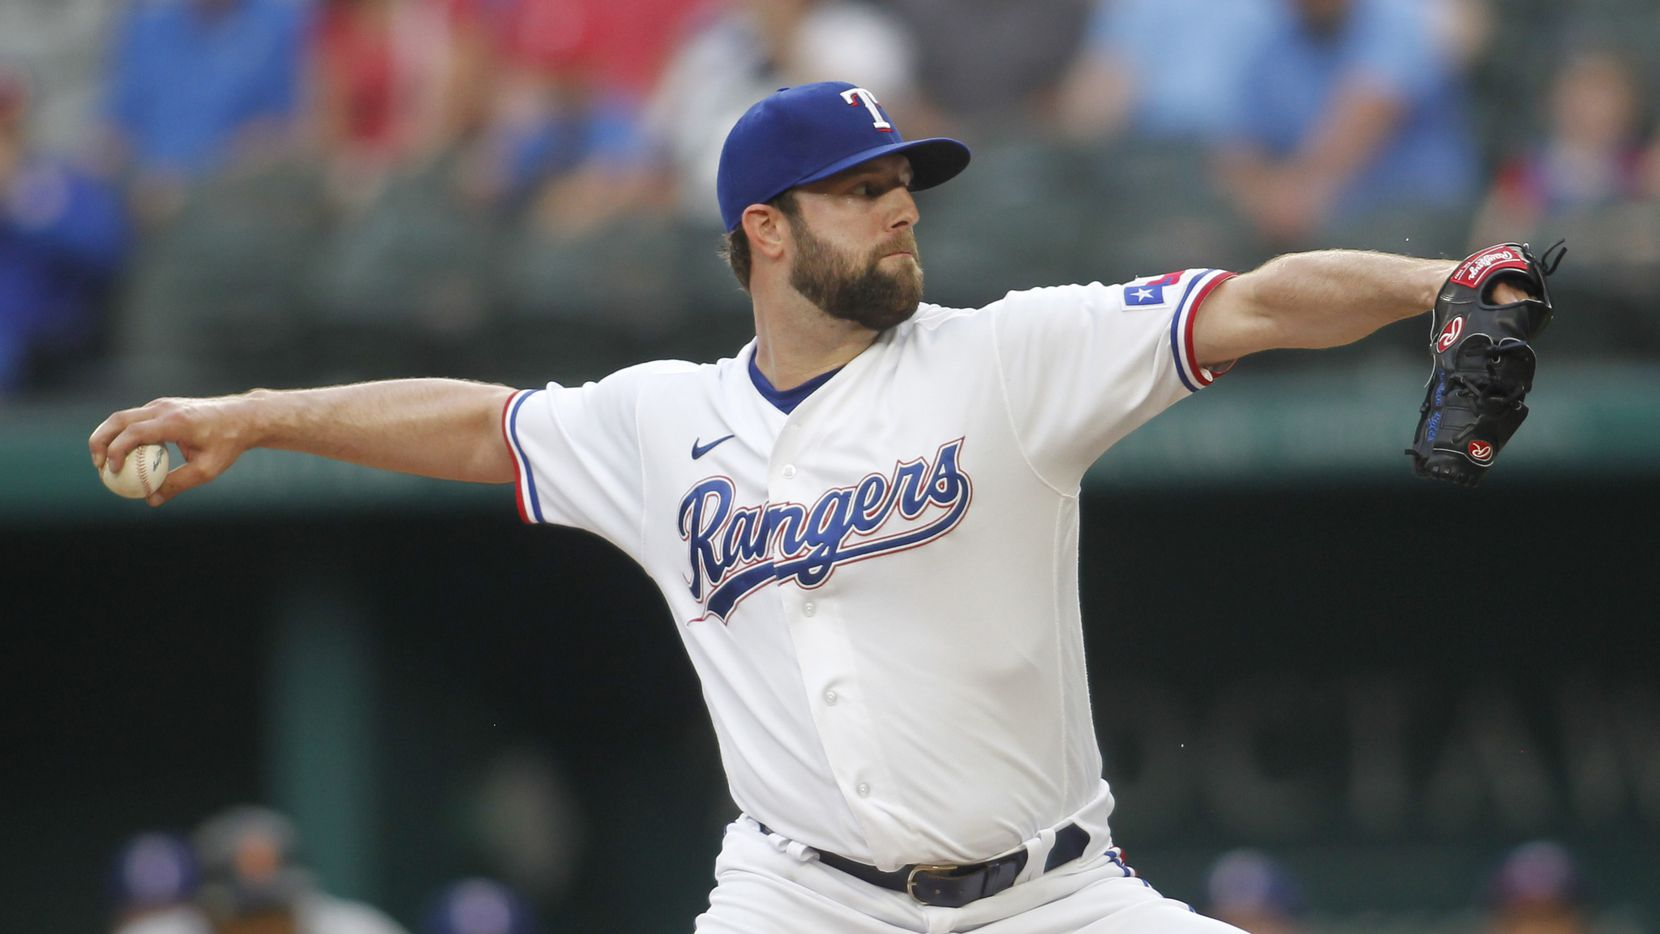 Texas Rangers pitcher Jordan Lyles (24) delivers a pitch during the top of the first inning of their game against the San Francisco Giants. The two teams played their MLB game at Globe Life Field in Arlington on June 8, 2021.